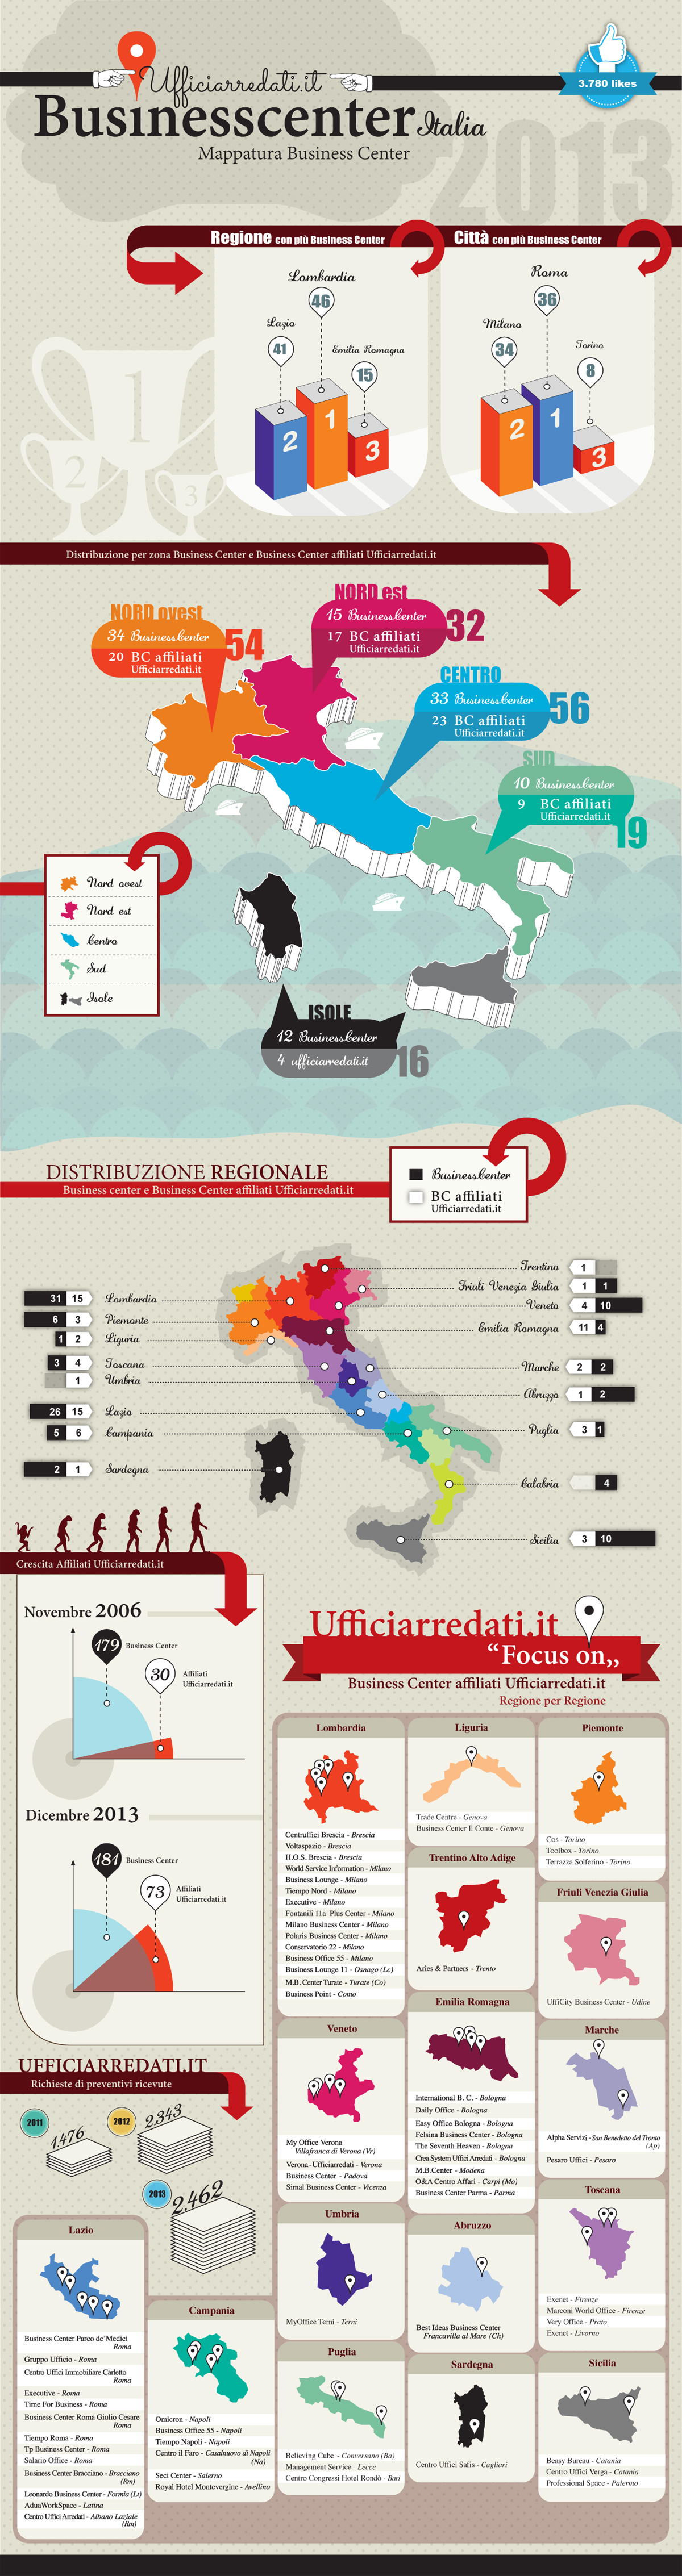 Infografica sui Business Center in Italia